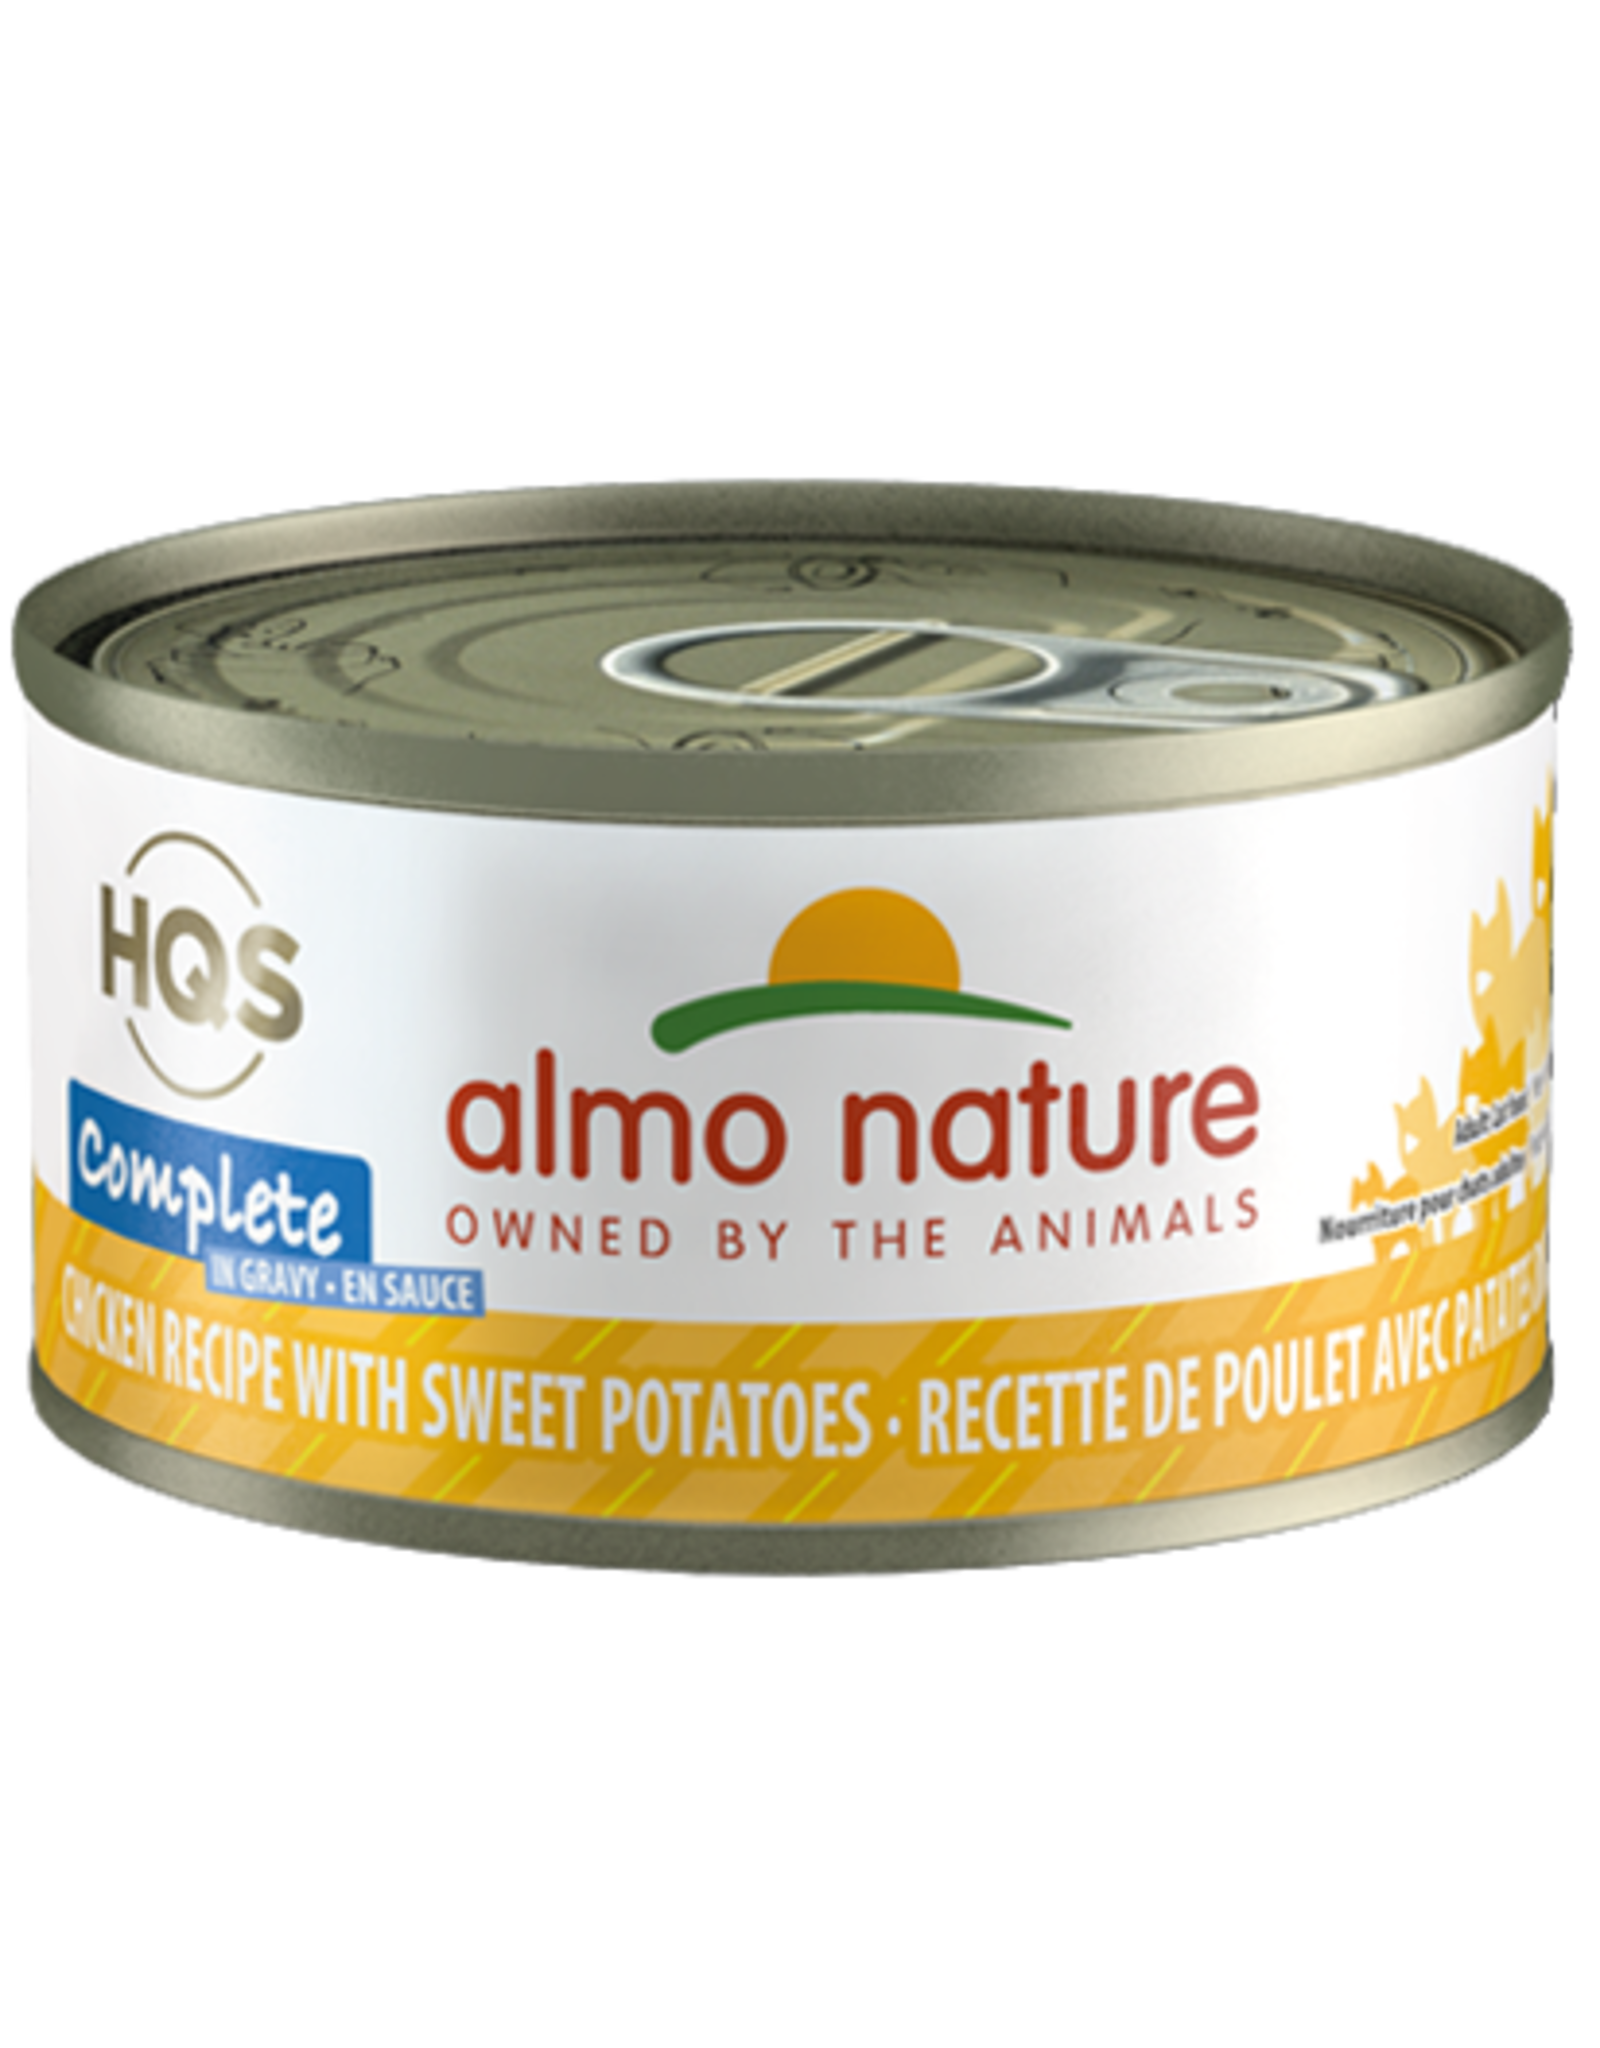 Almo Nature Almo Nature HQS Complete Wet Cat Food Chicken Recipe with Sweet Potatoes in Gravy 2.47oz Can Grain Free